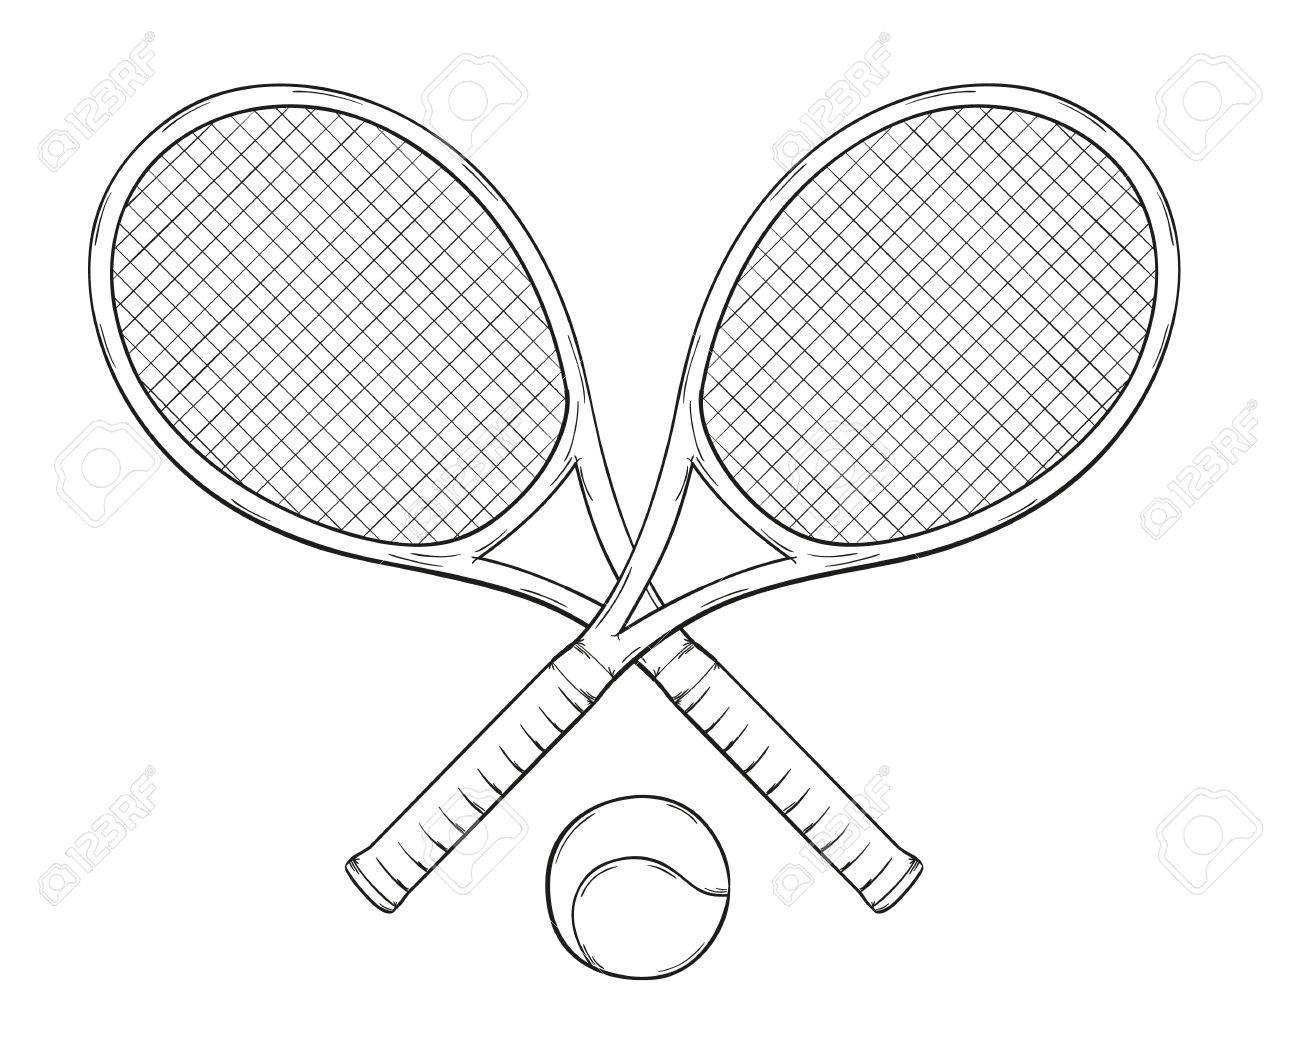 1300x1045 Two Tenis Rackets And Ball, Sketch Royalty Free Cliparts, Vectors